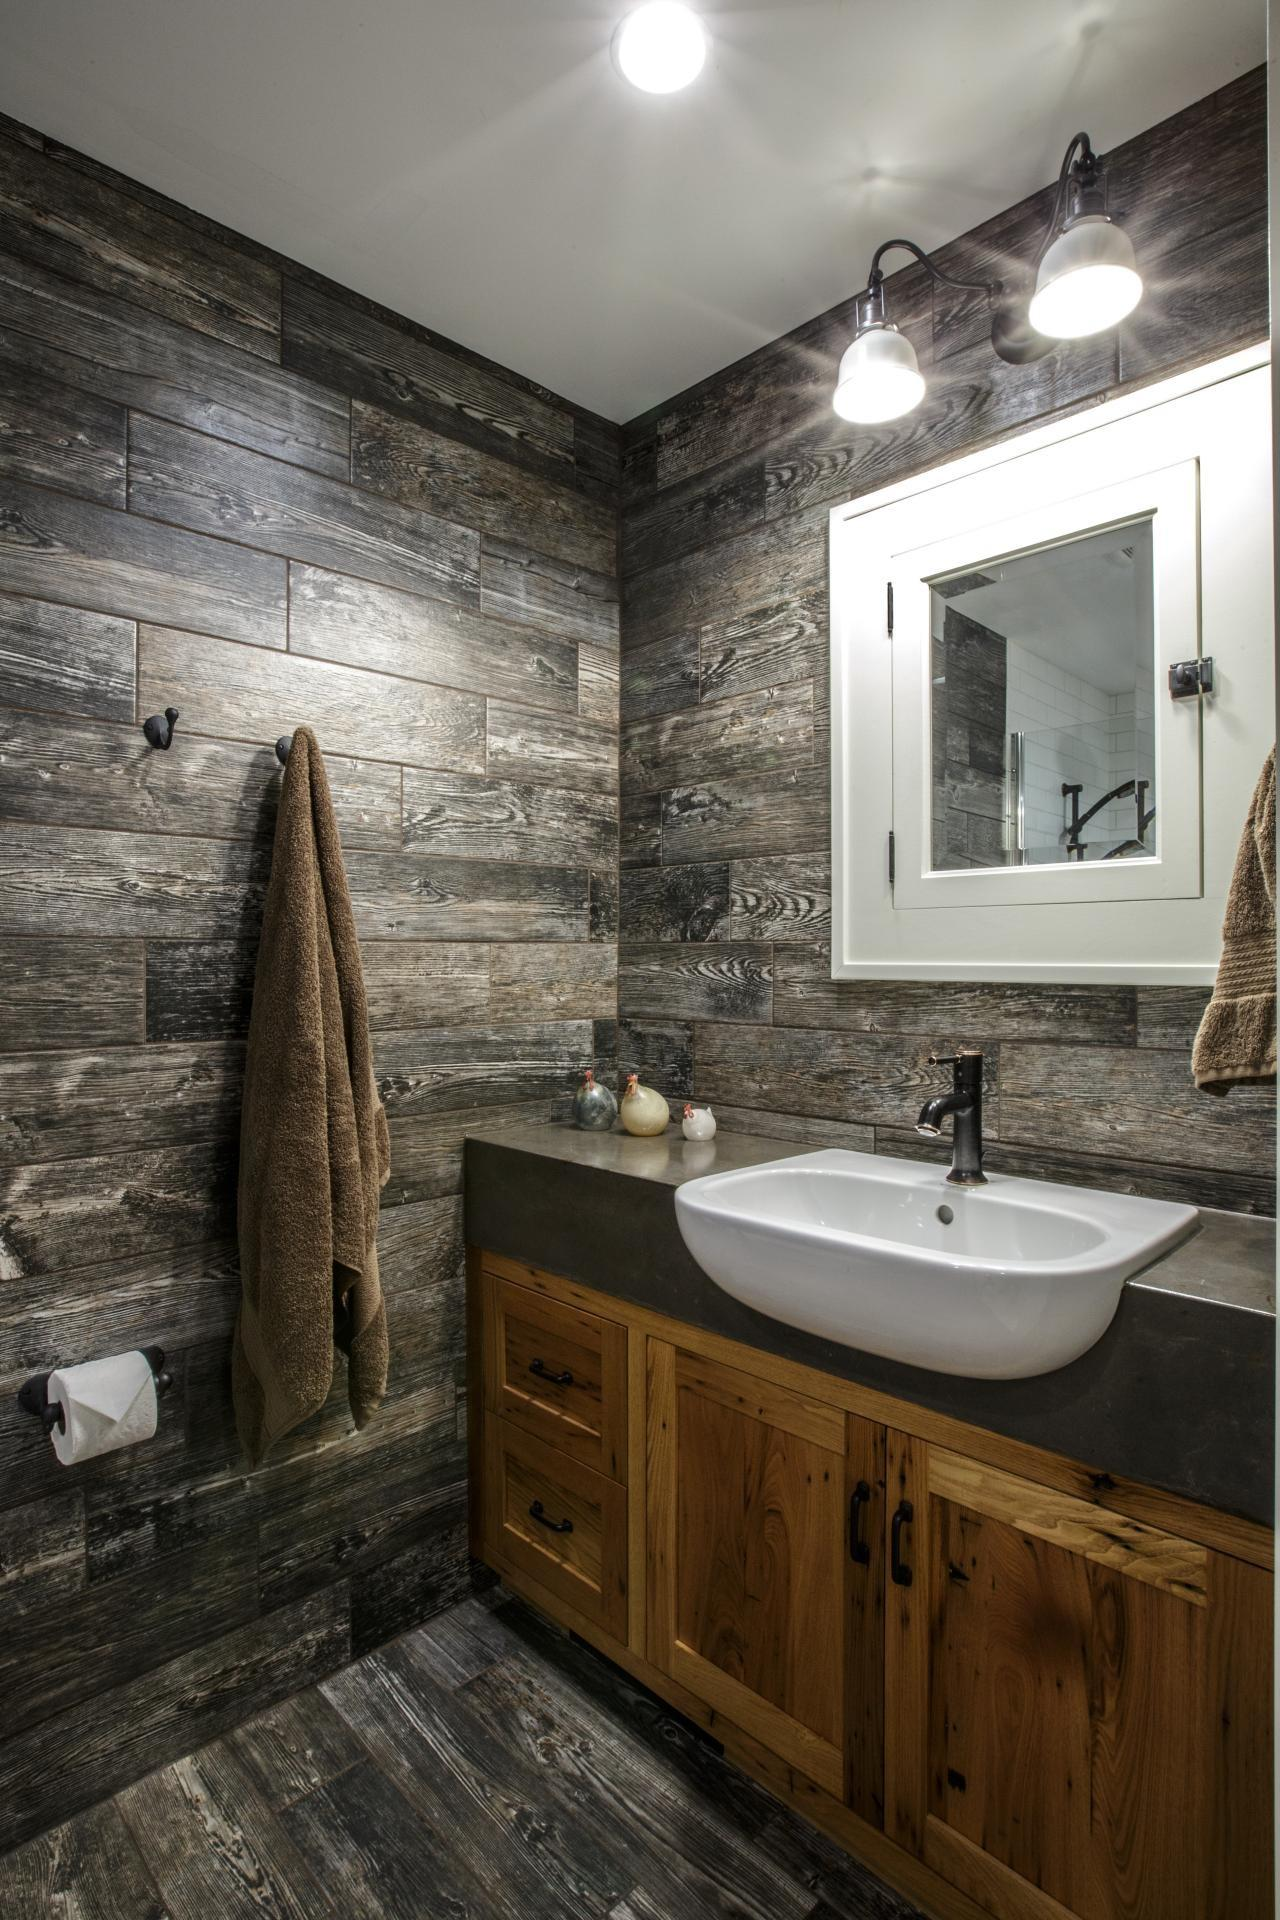 2015 Nkba People Pick Best Bathroom Ideas